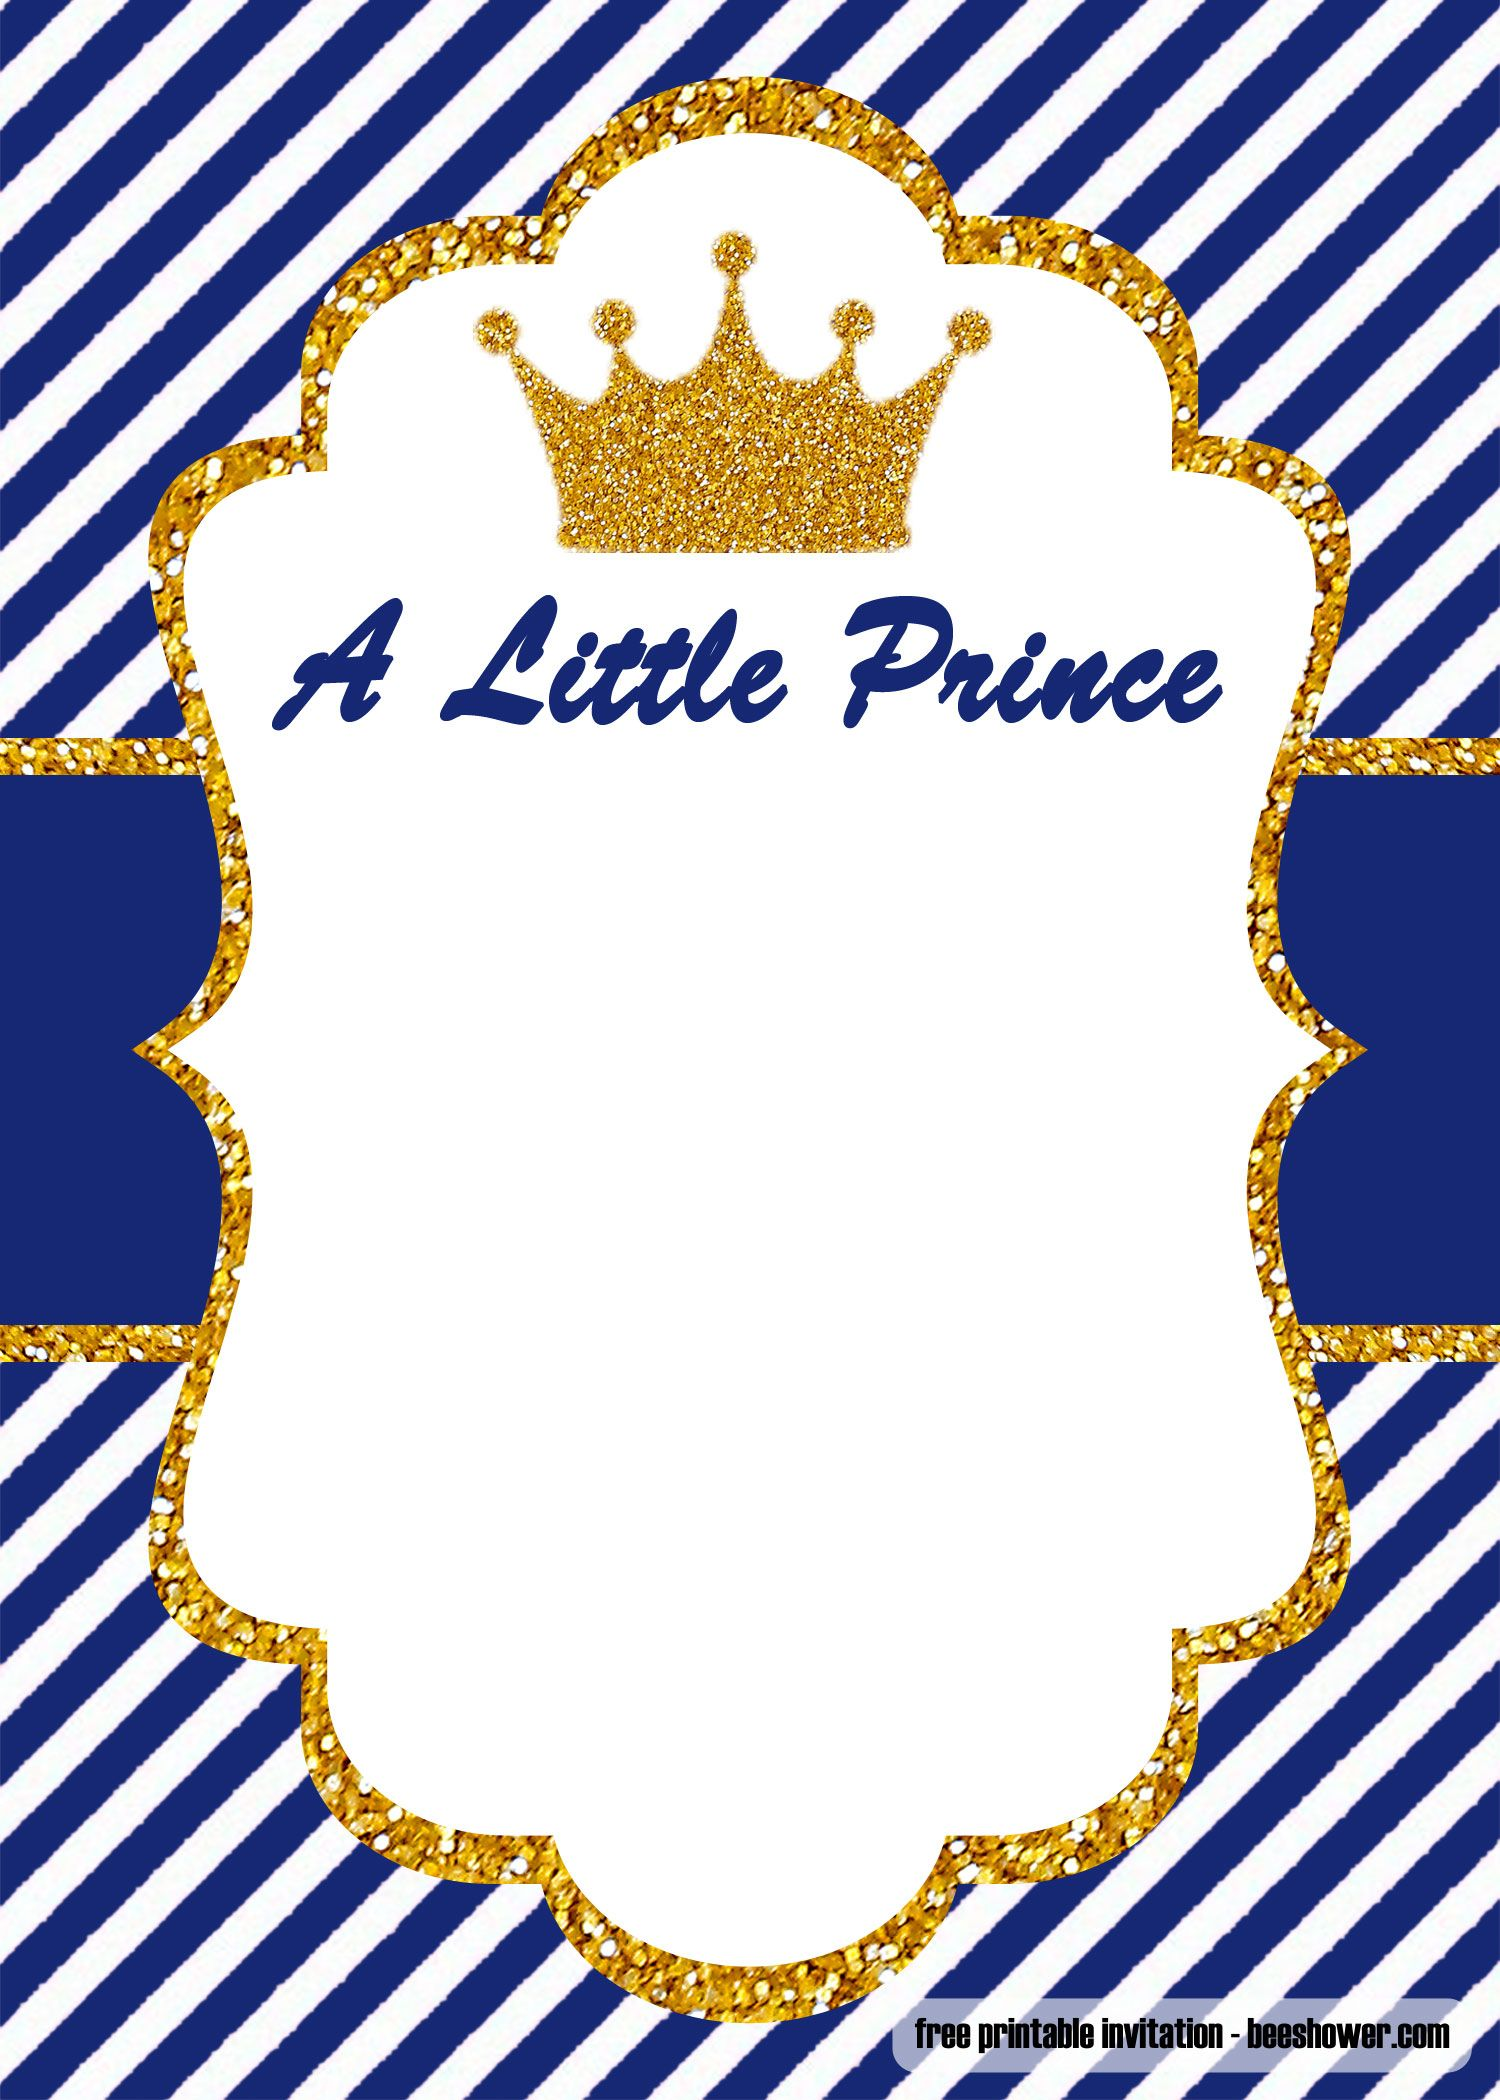 Free Little Prince Baby Shower Invitations Templates Free Pr Royal Baby Shower Invitation Free Baby Shower Invitations Free Printable Baby Shower Invitations